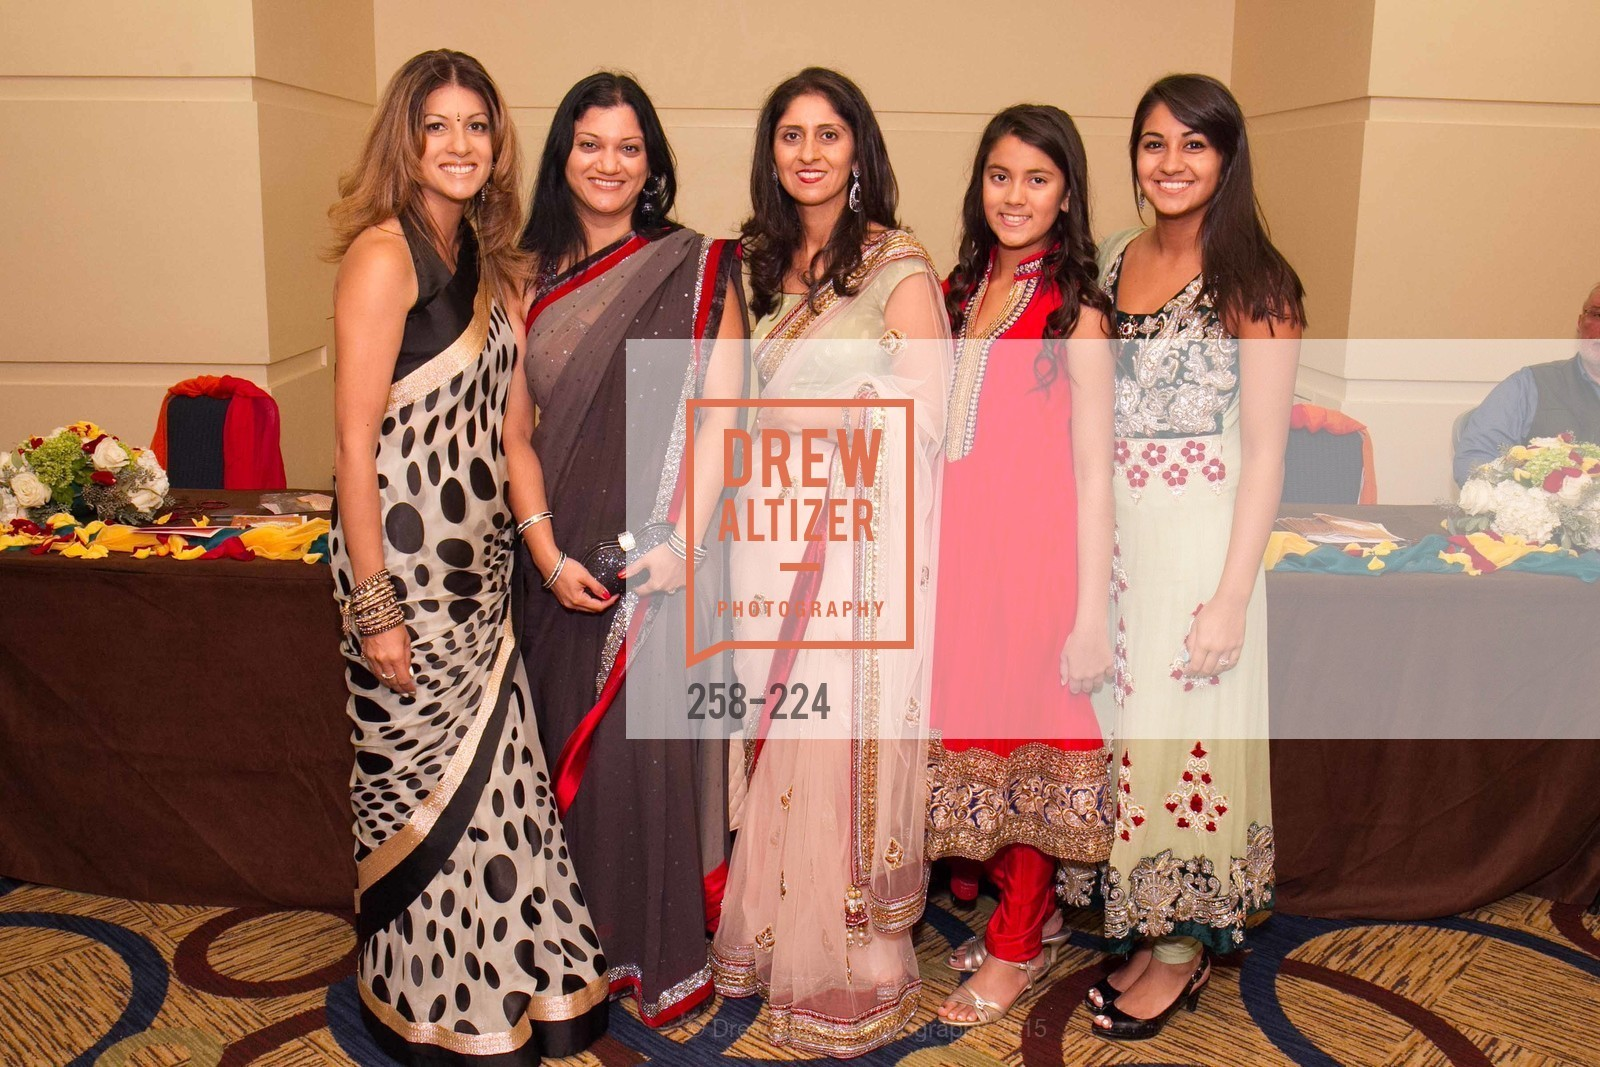 Napjah Nanda, Reena Gaba, Kira Nagpal, Saiyam Nagpal, Mahek Nagpal, Life Chiropractic College West Presents The Wave, Hyatt Regency San Francisco Airport. 1333 Old Bayshore Hwy, August 8th, 2015,Drew Altizer, Drew Altizer Photography, full-service agency, private events, San Francisco photographer, photographer california